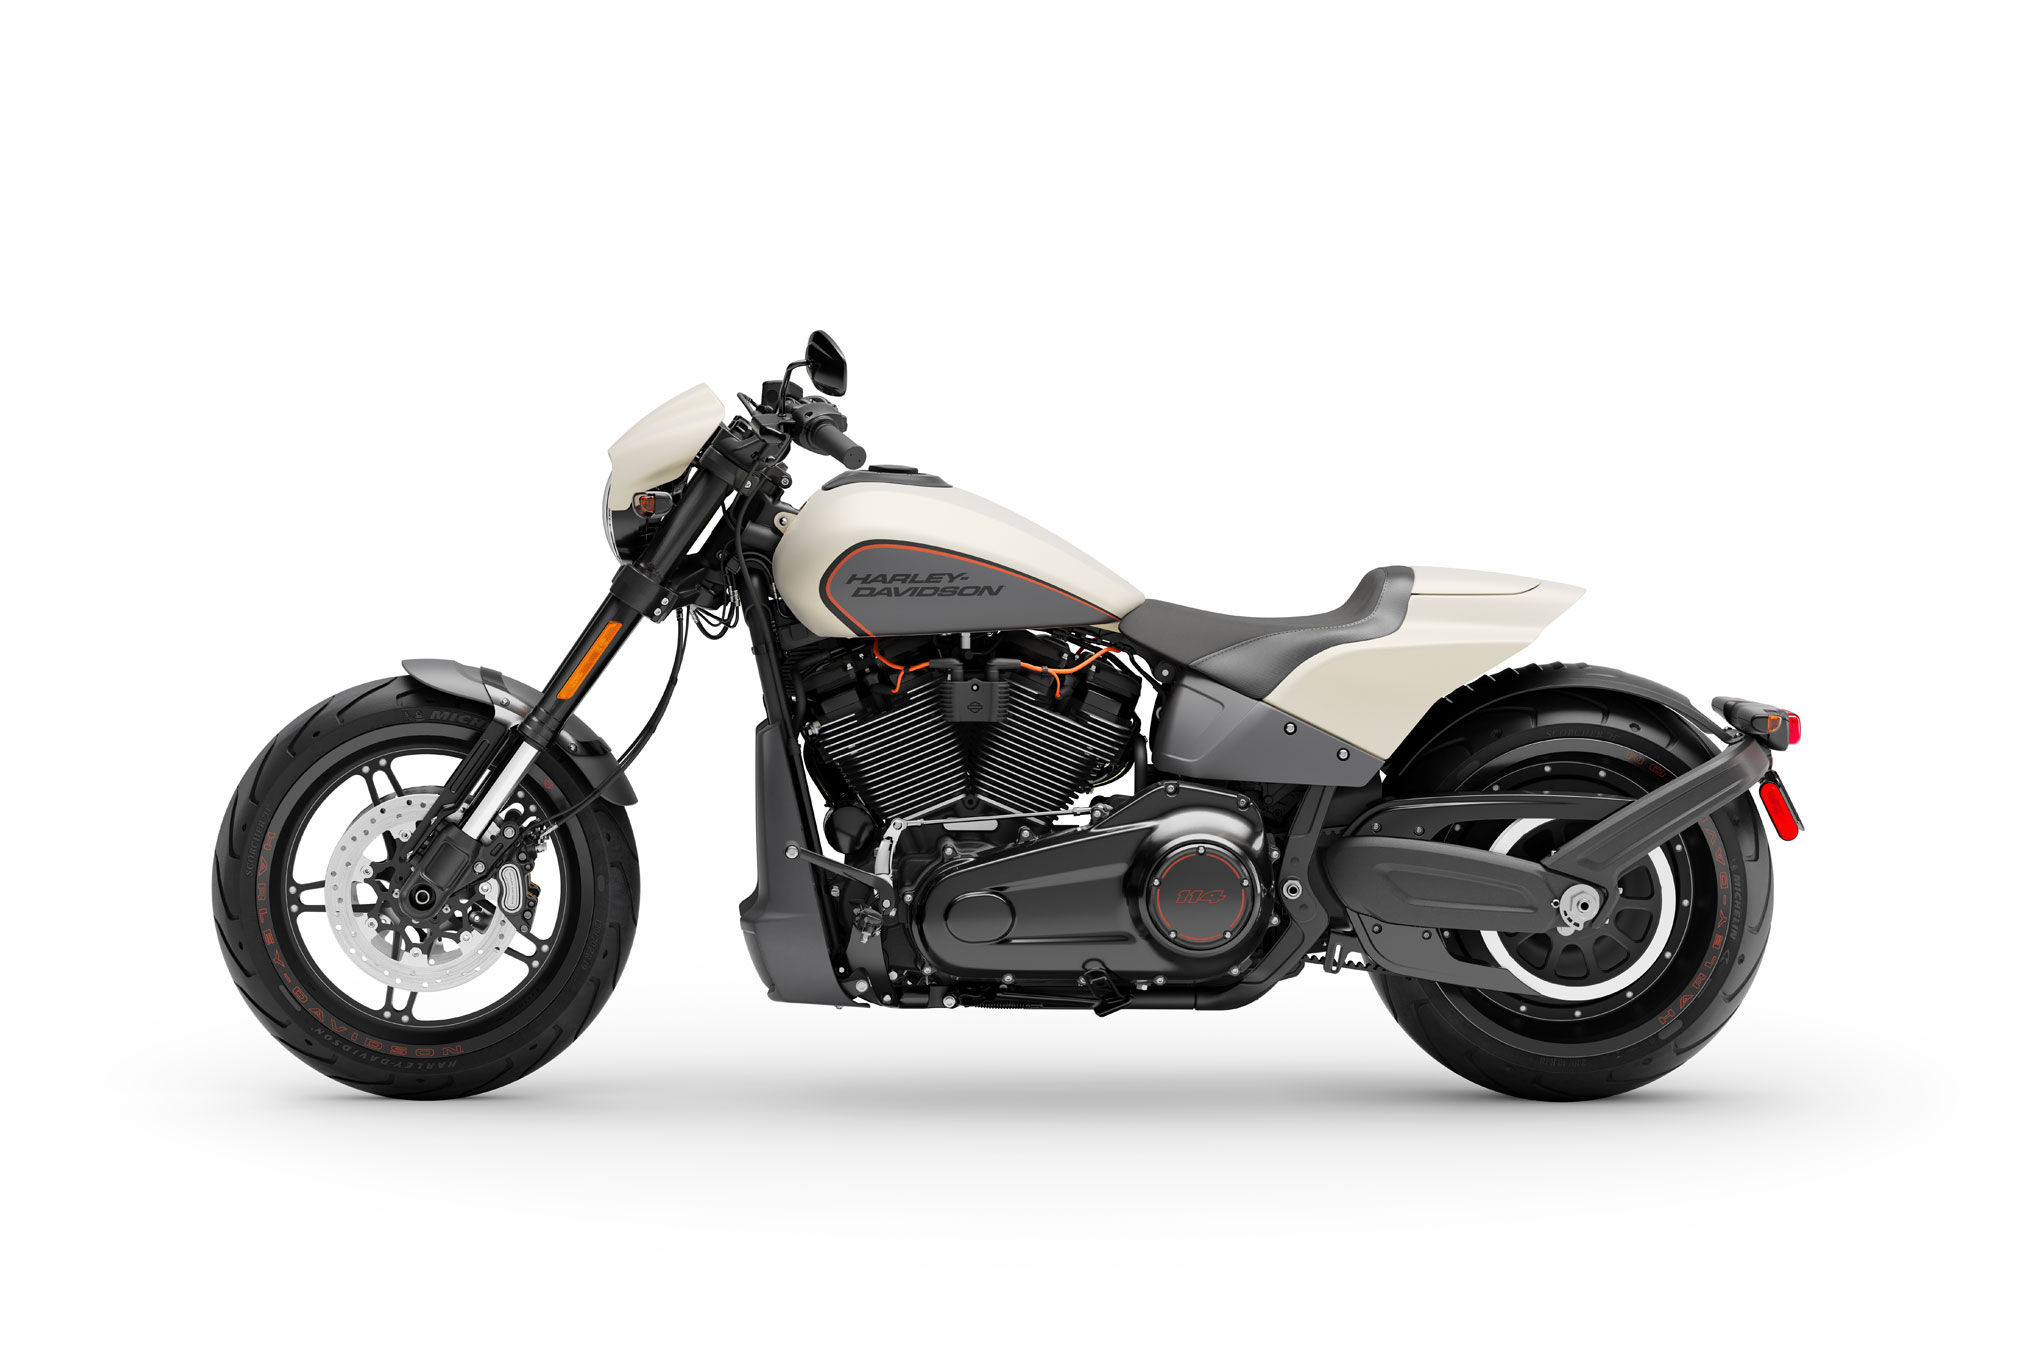 New Models 2019 Harley Davidson Fxdr 114 Review: 2019 Harley-Davidson FXDR 114 Guide • Total Motorcycle